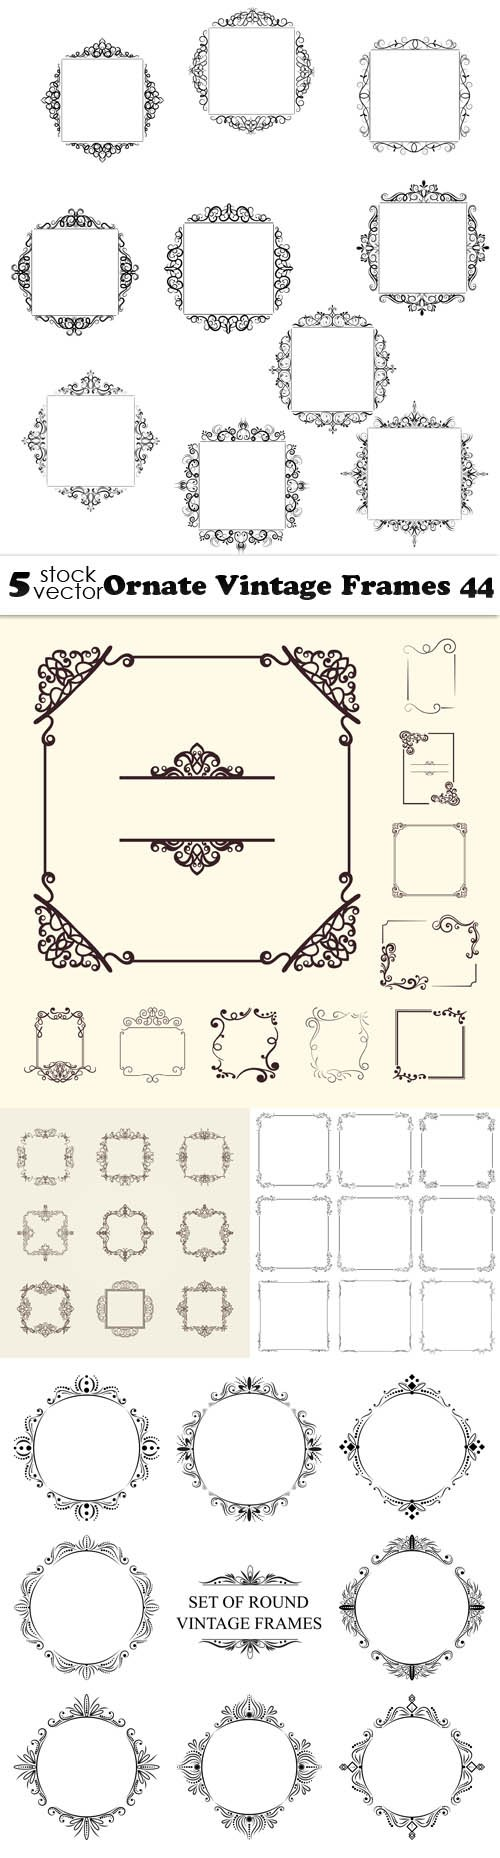 Vectors - Ornate Vintage Frames 44